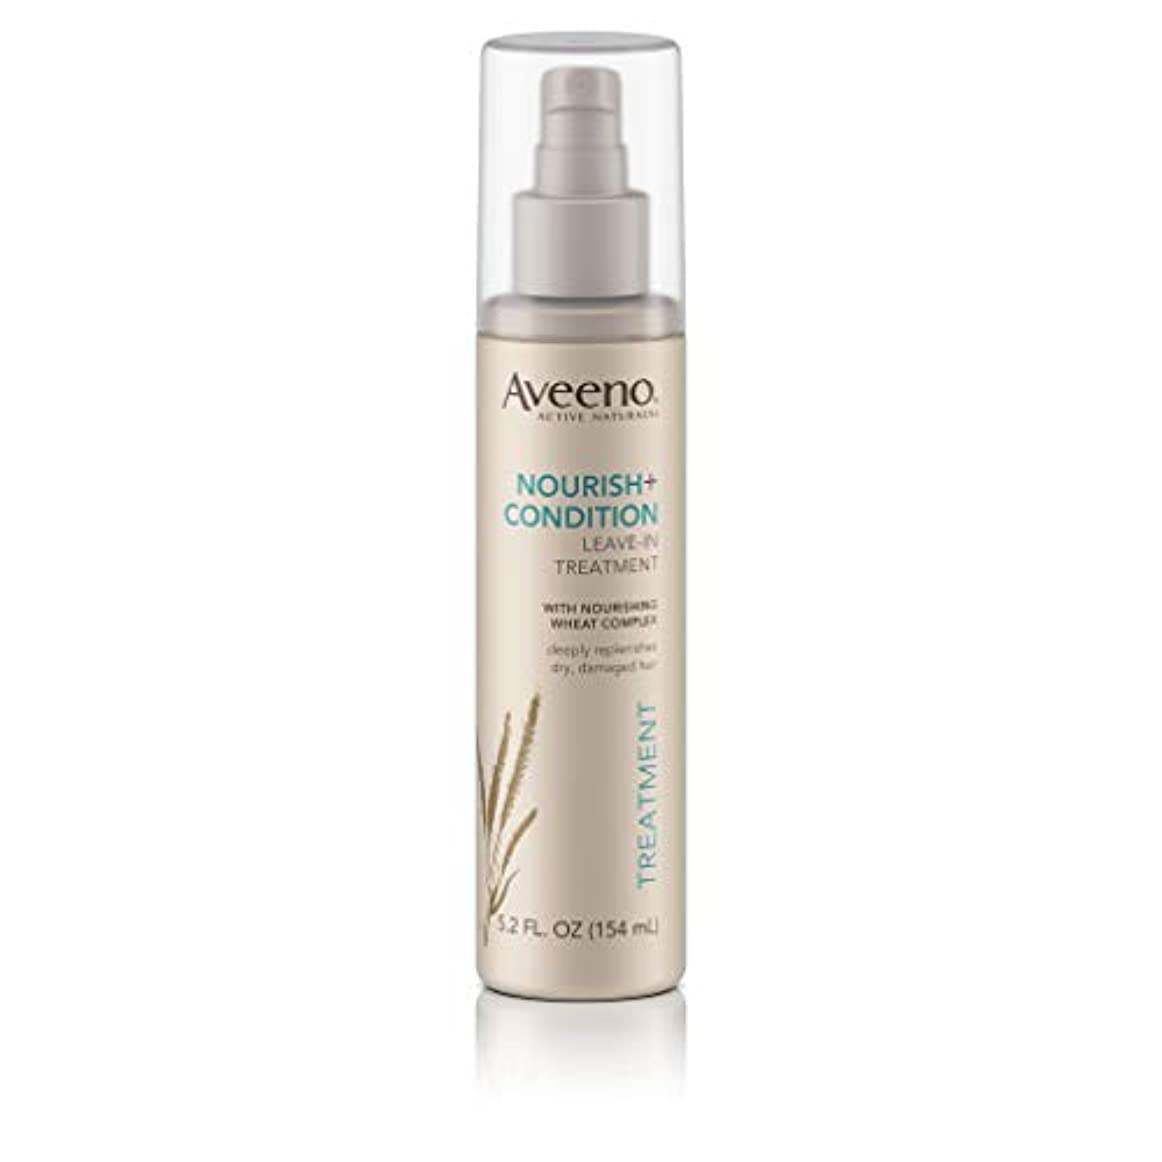 妖精半円並外れたAveeno Nourish+ Condition Treatment Spray 150g (並行輸入品)